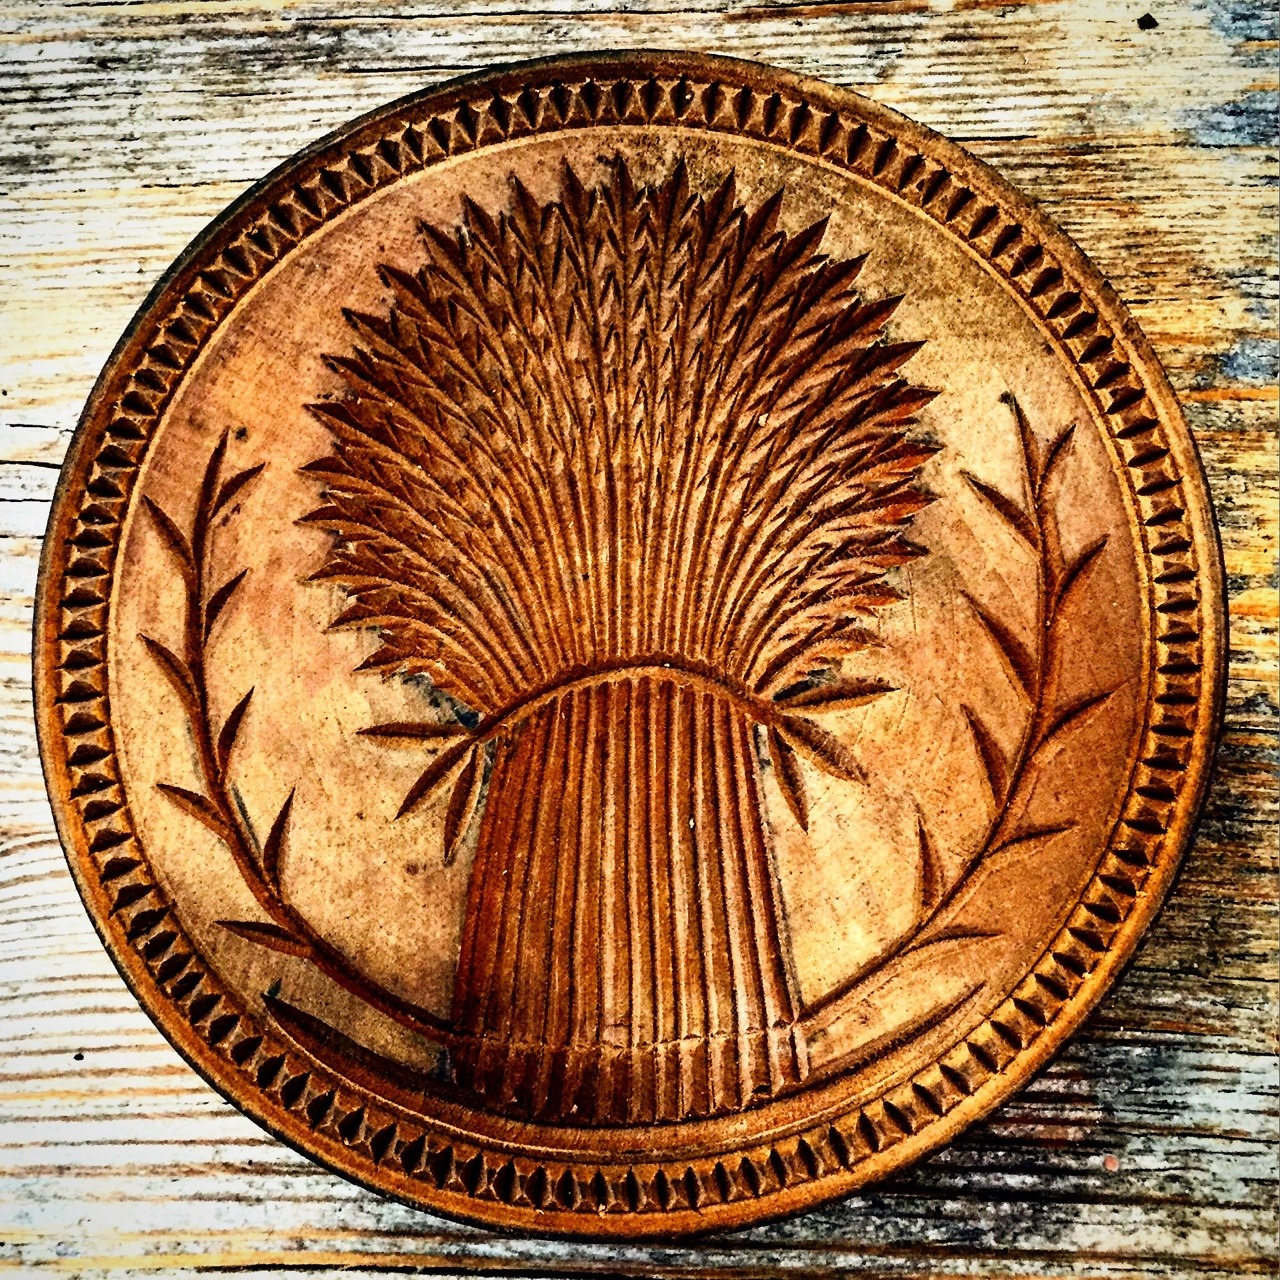 Butter stamp.  Carved oak.  American, late 1800s.